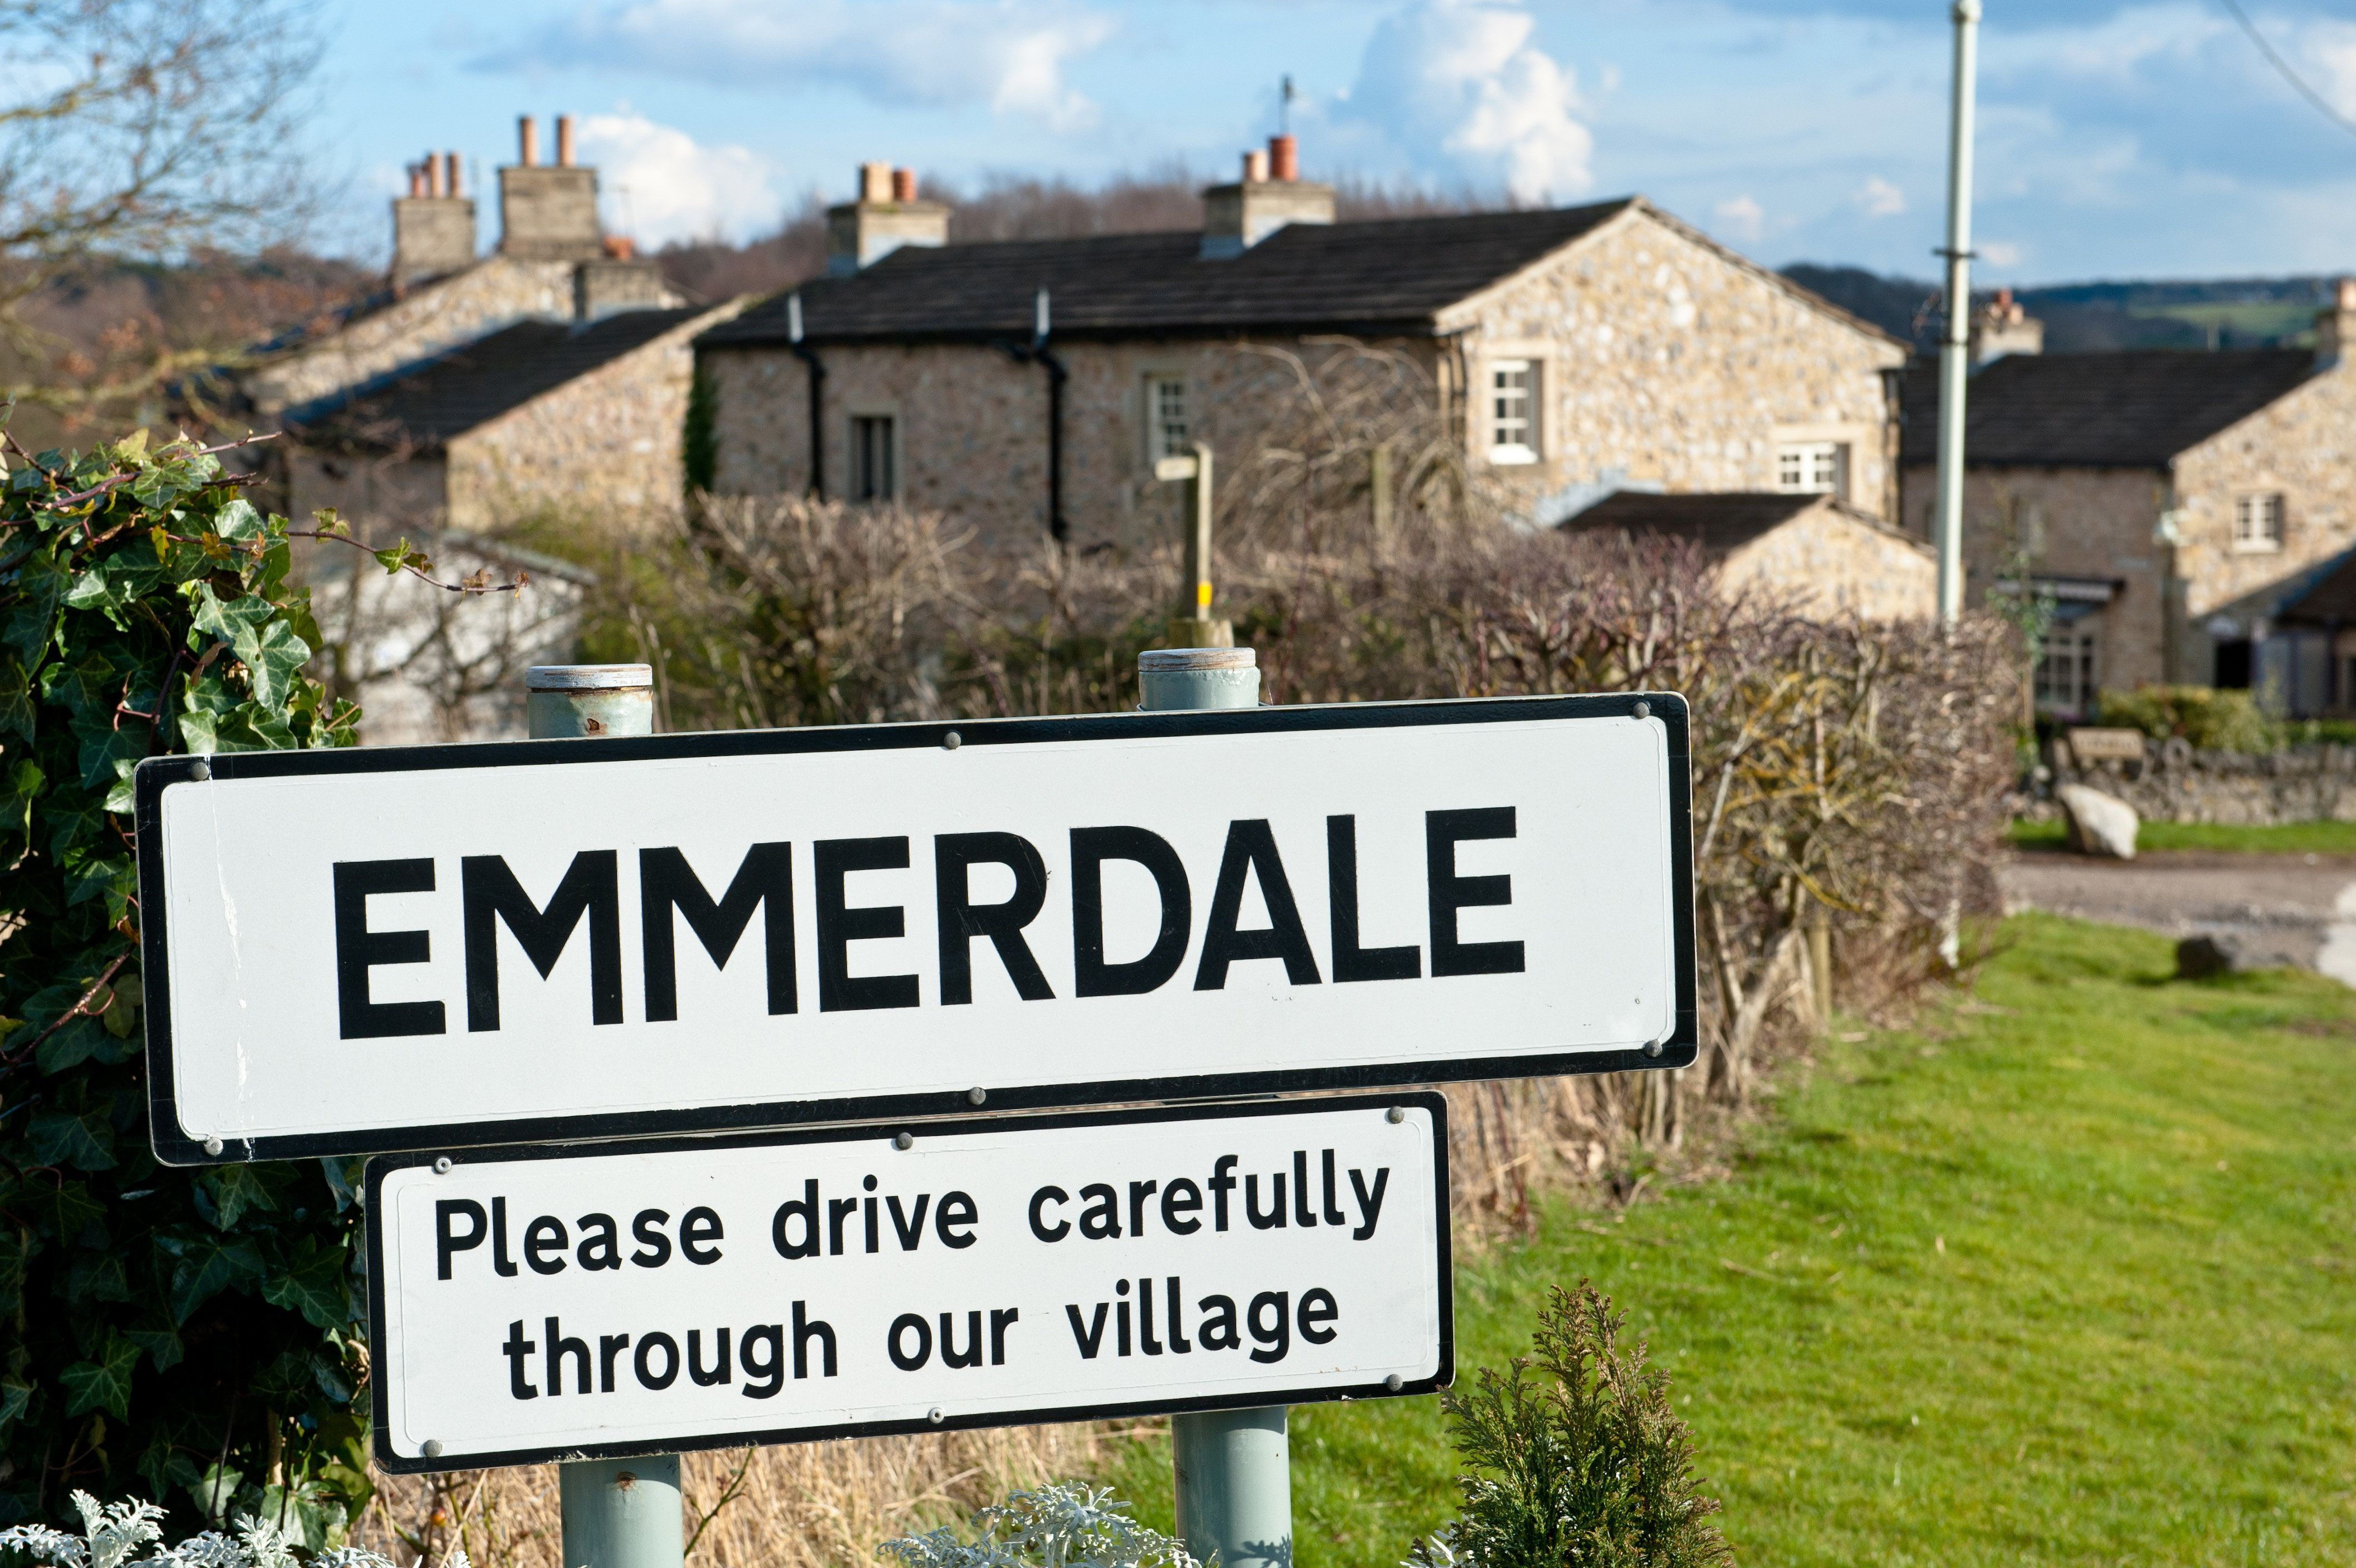 'Emmerdale' fans are in for a treat later this